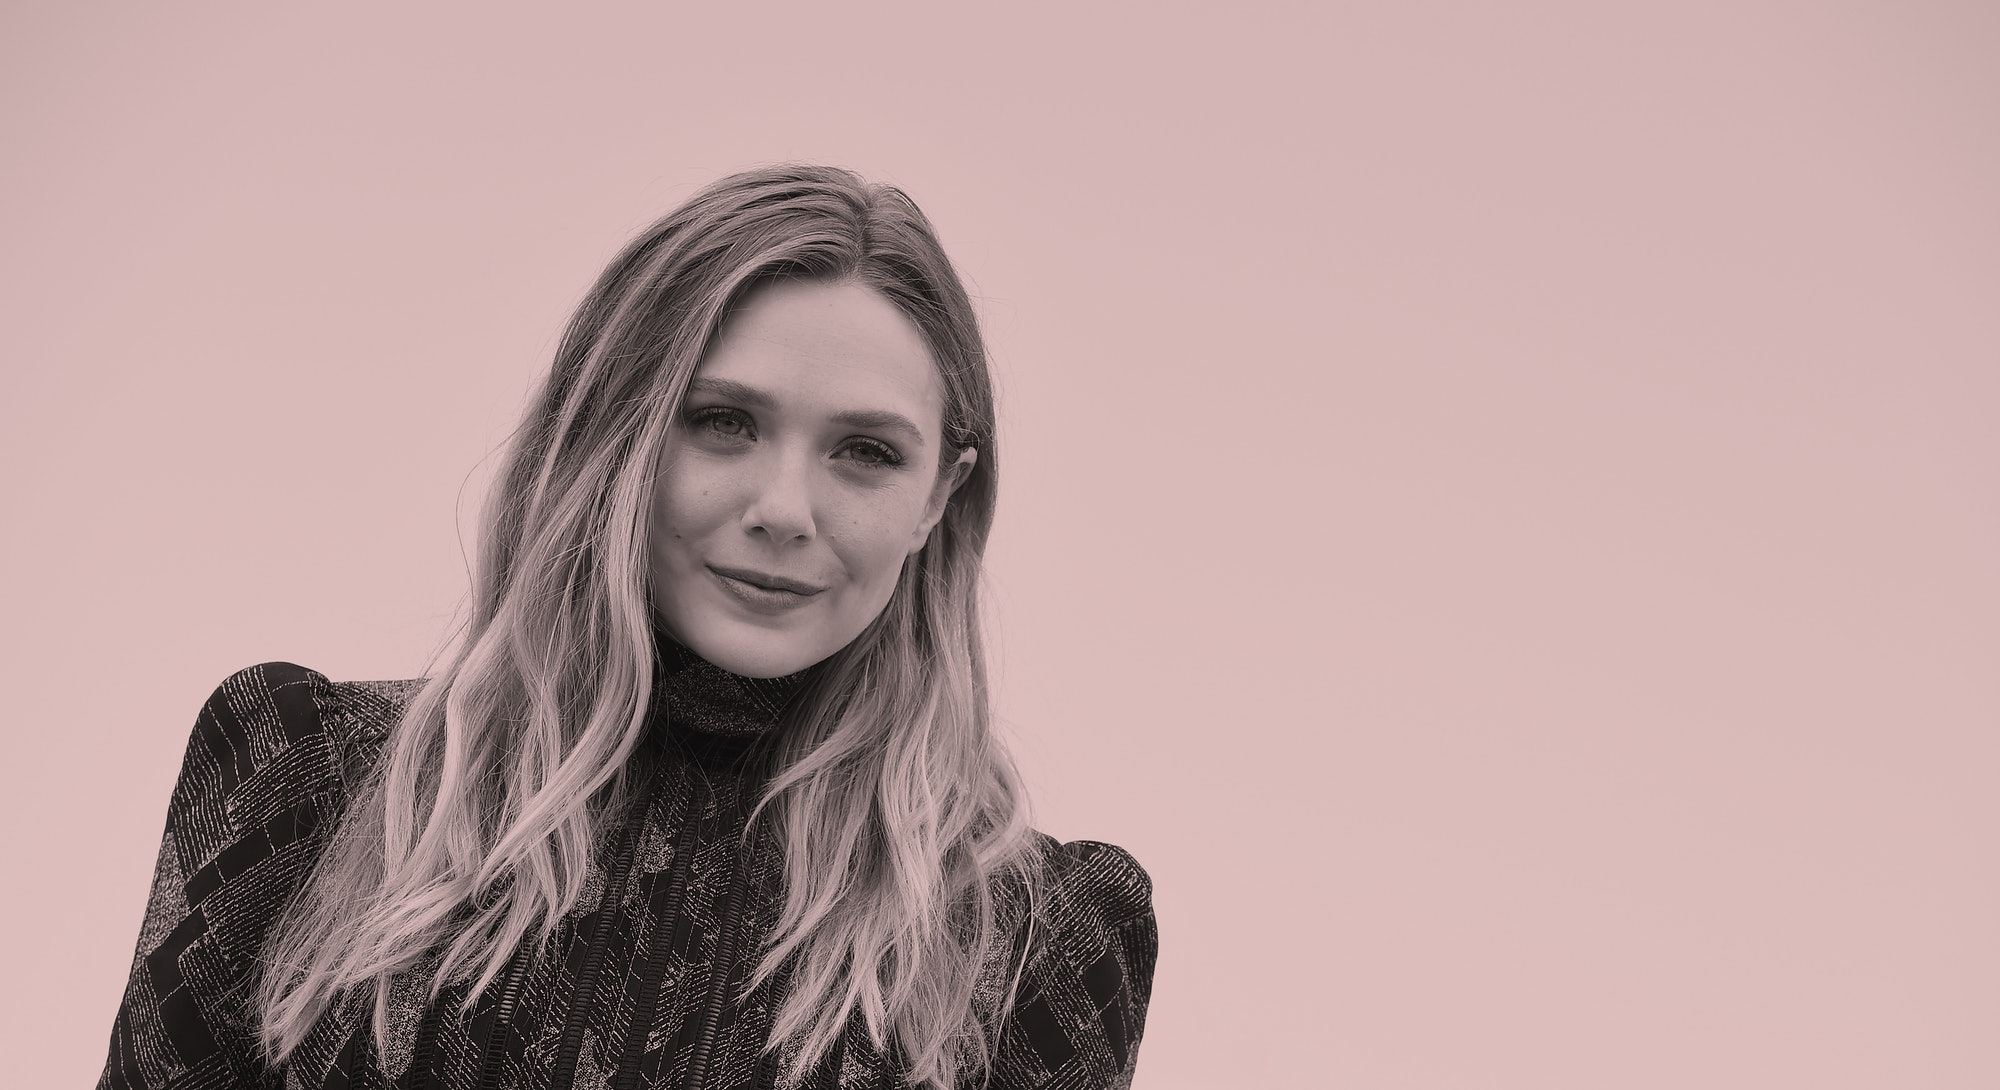 Elizabeth Olsen wearing black dress